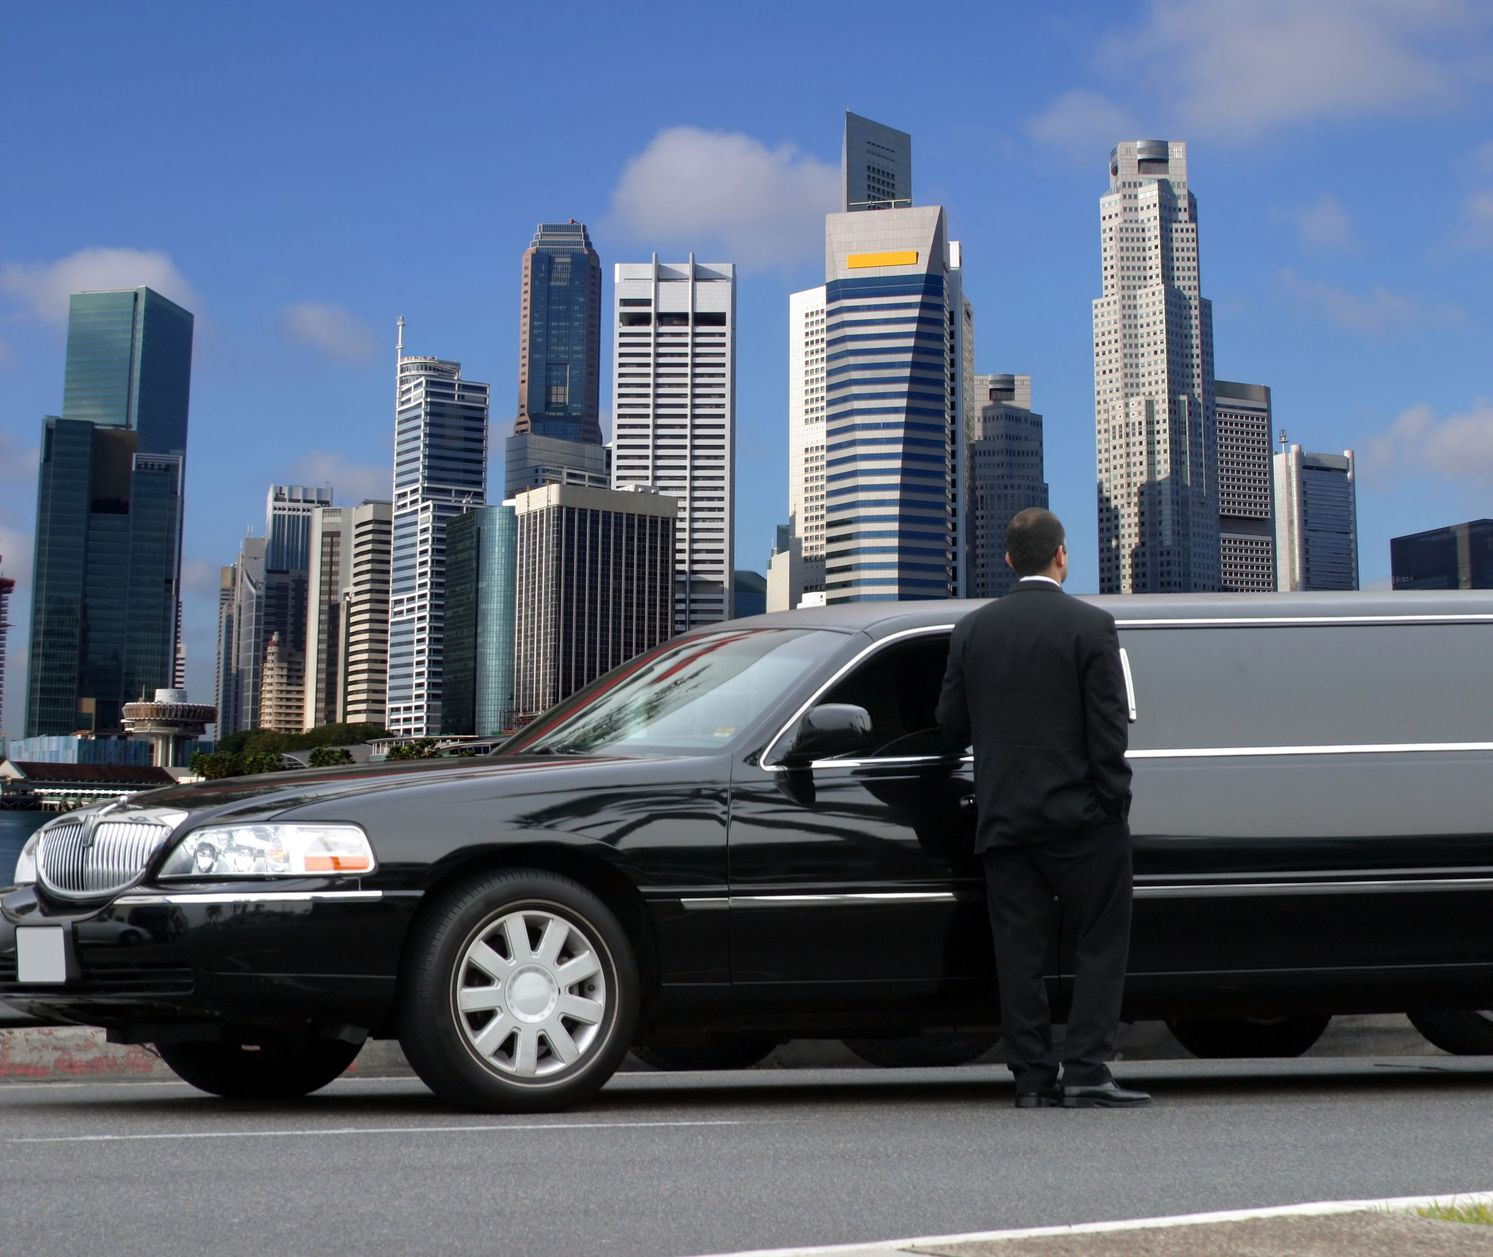 Miami Business/Commercial Auto Insurance